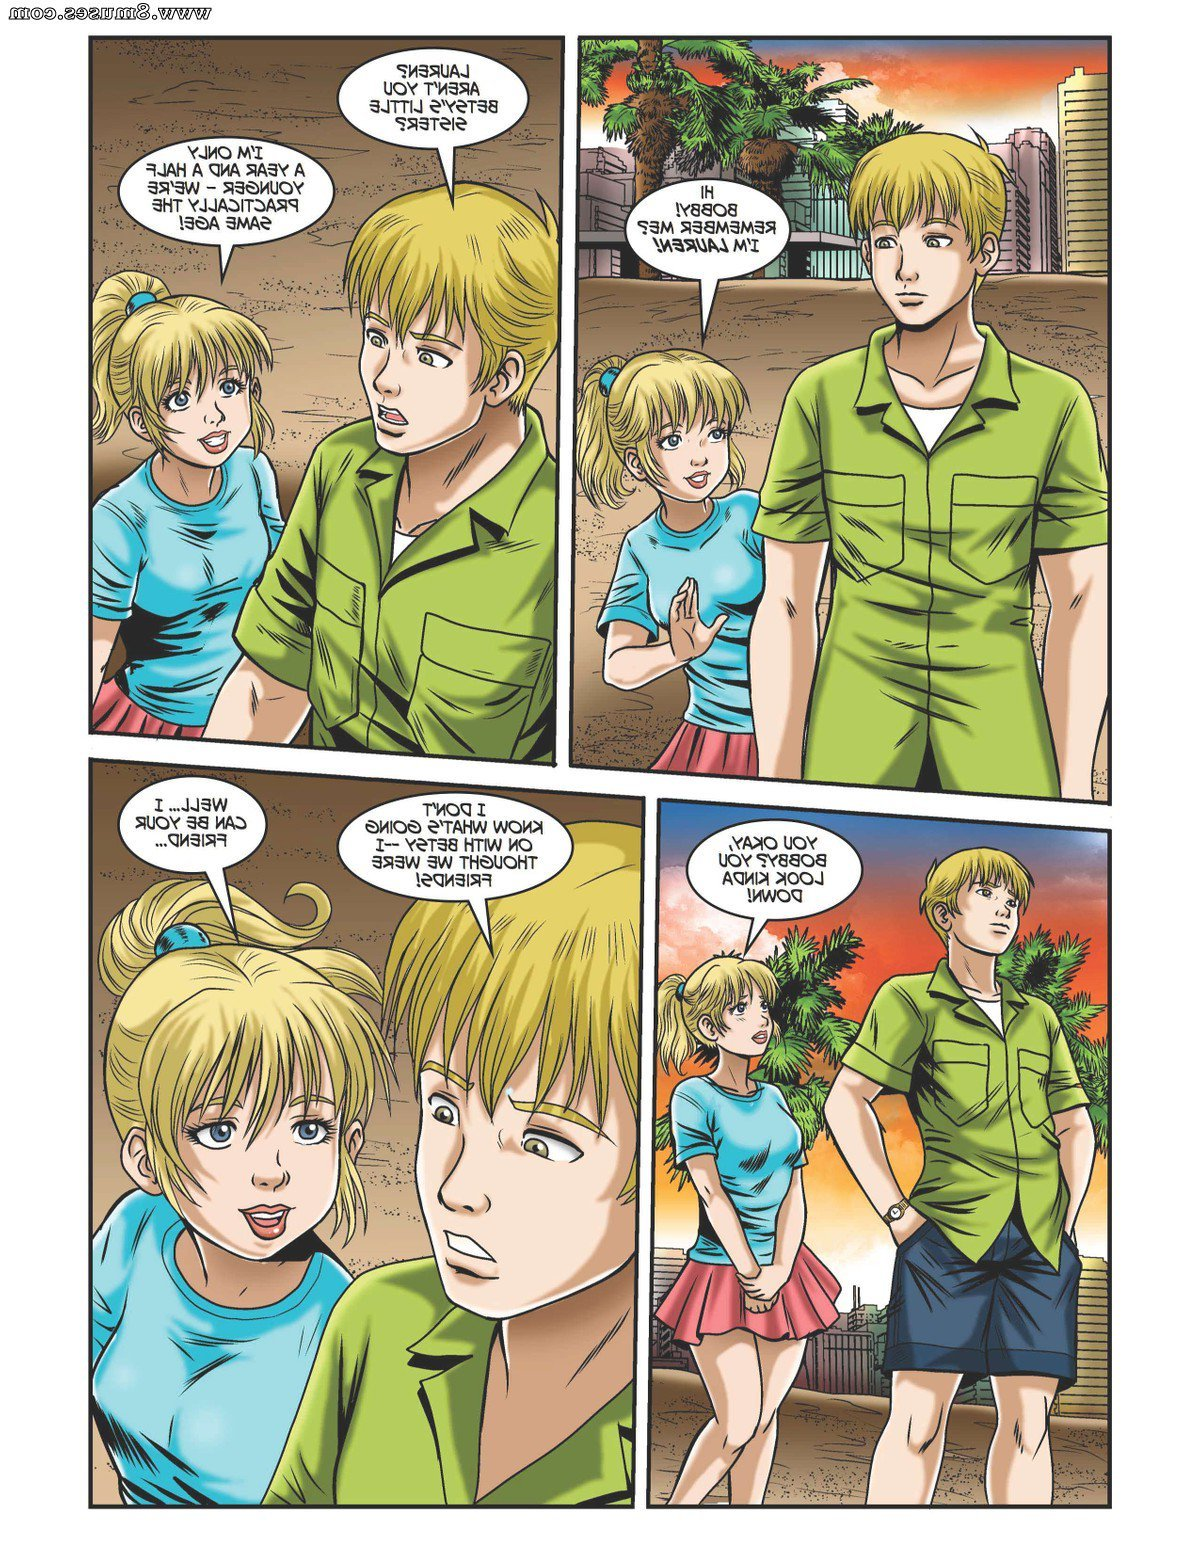 DreamTales-Comics/A-Growing-Attraction/Issue-1 A_Growing_Attraction_-_Issue_1_10.jpg